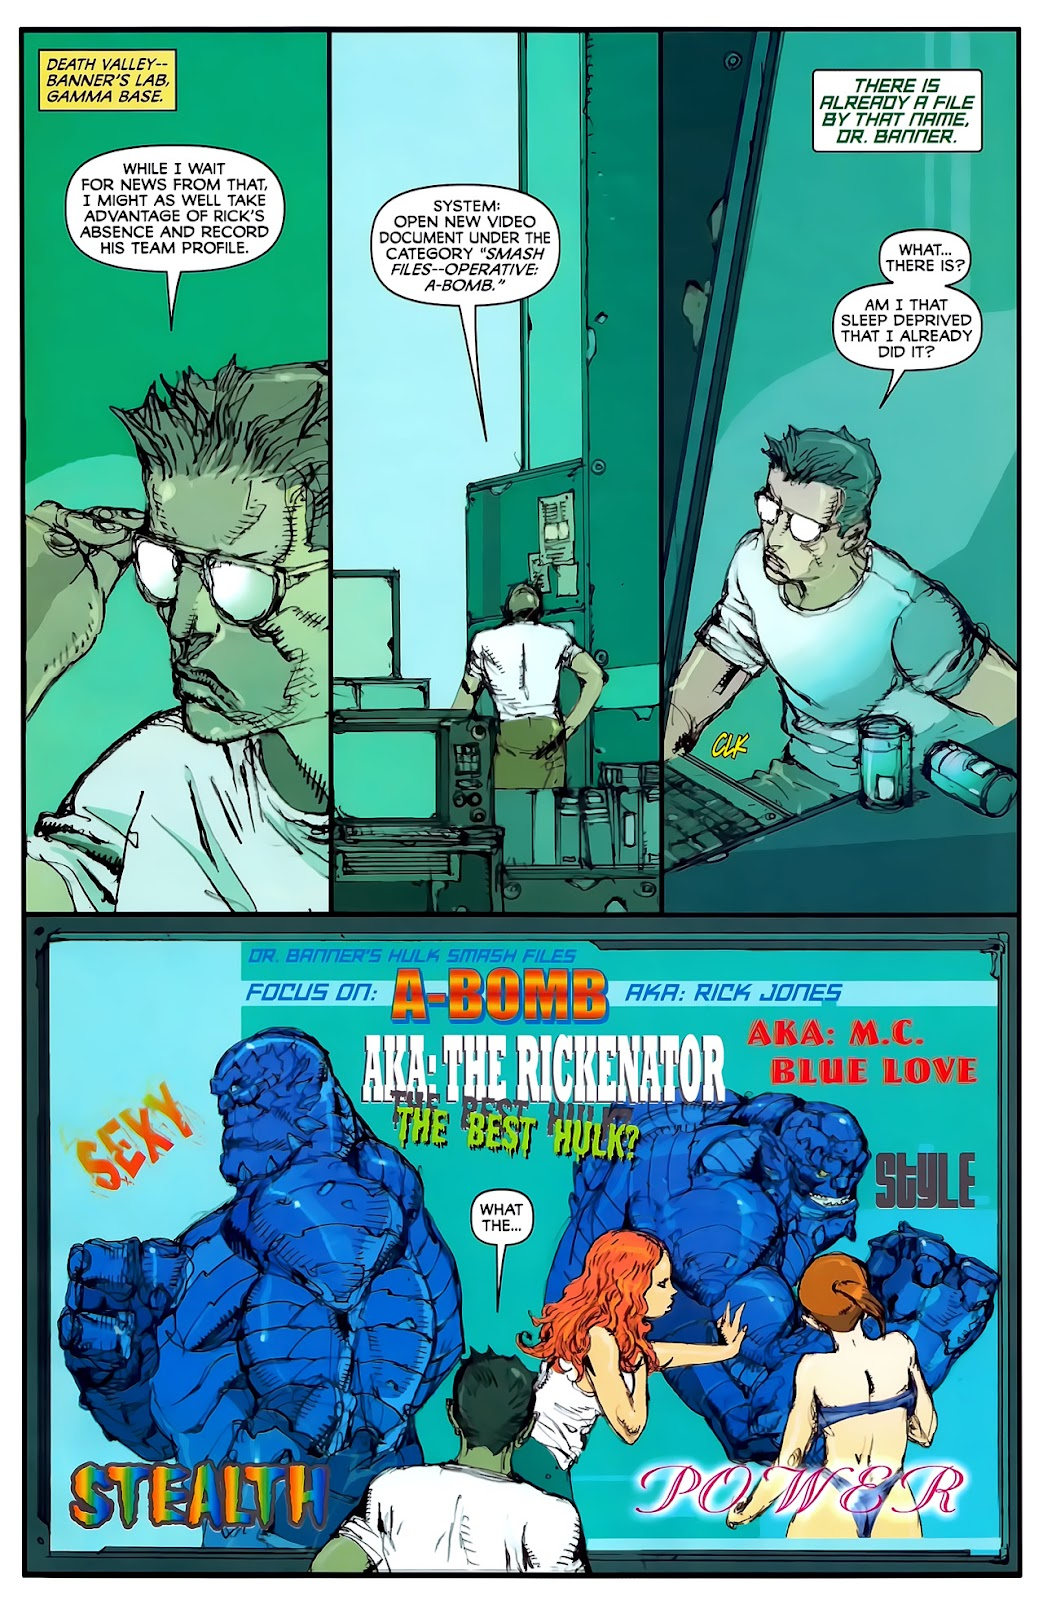 Incredible Hulks (2010) Issue #618 #8 - English 27